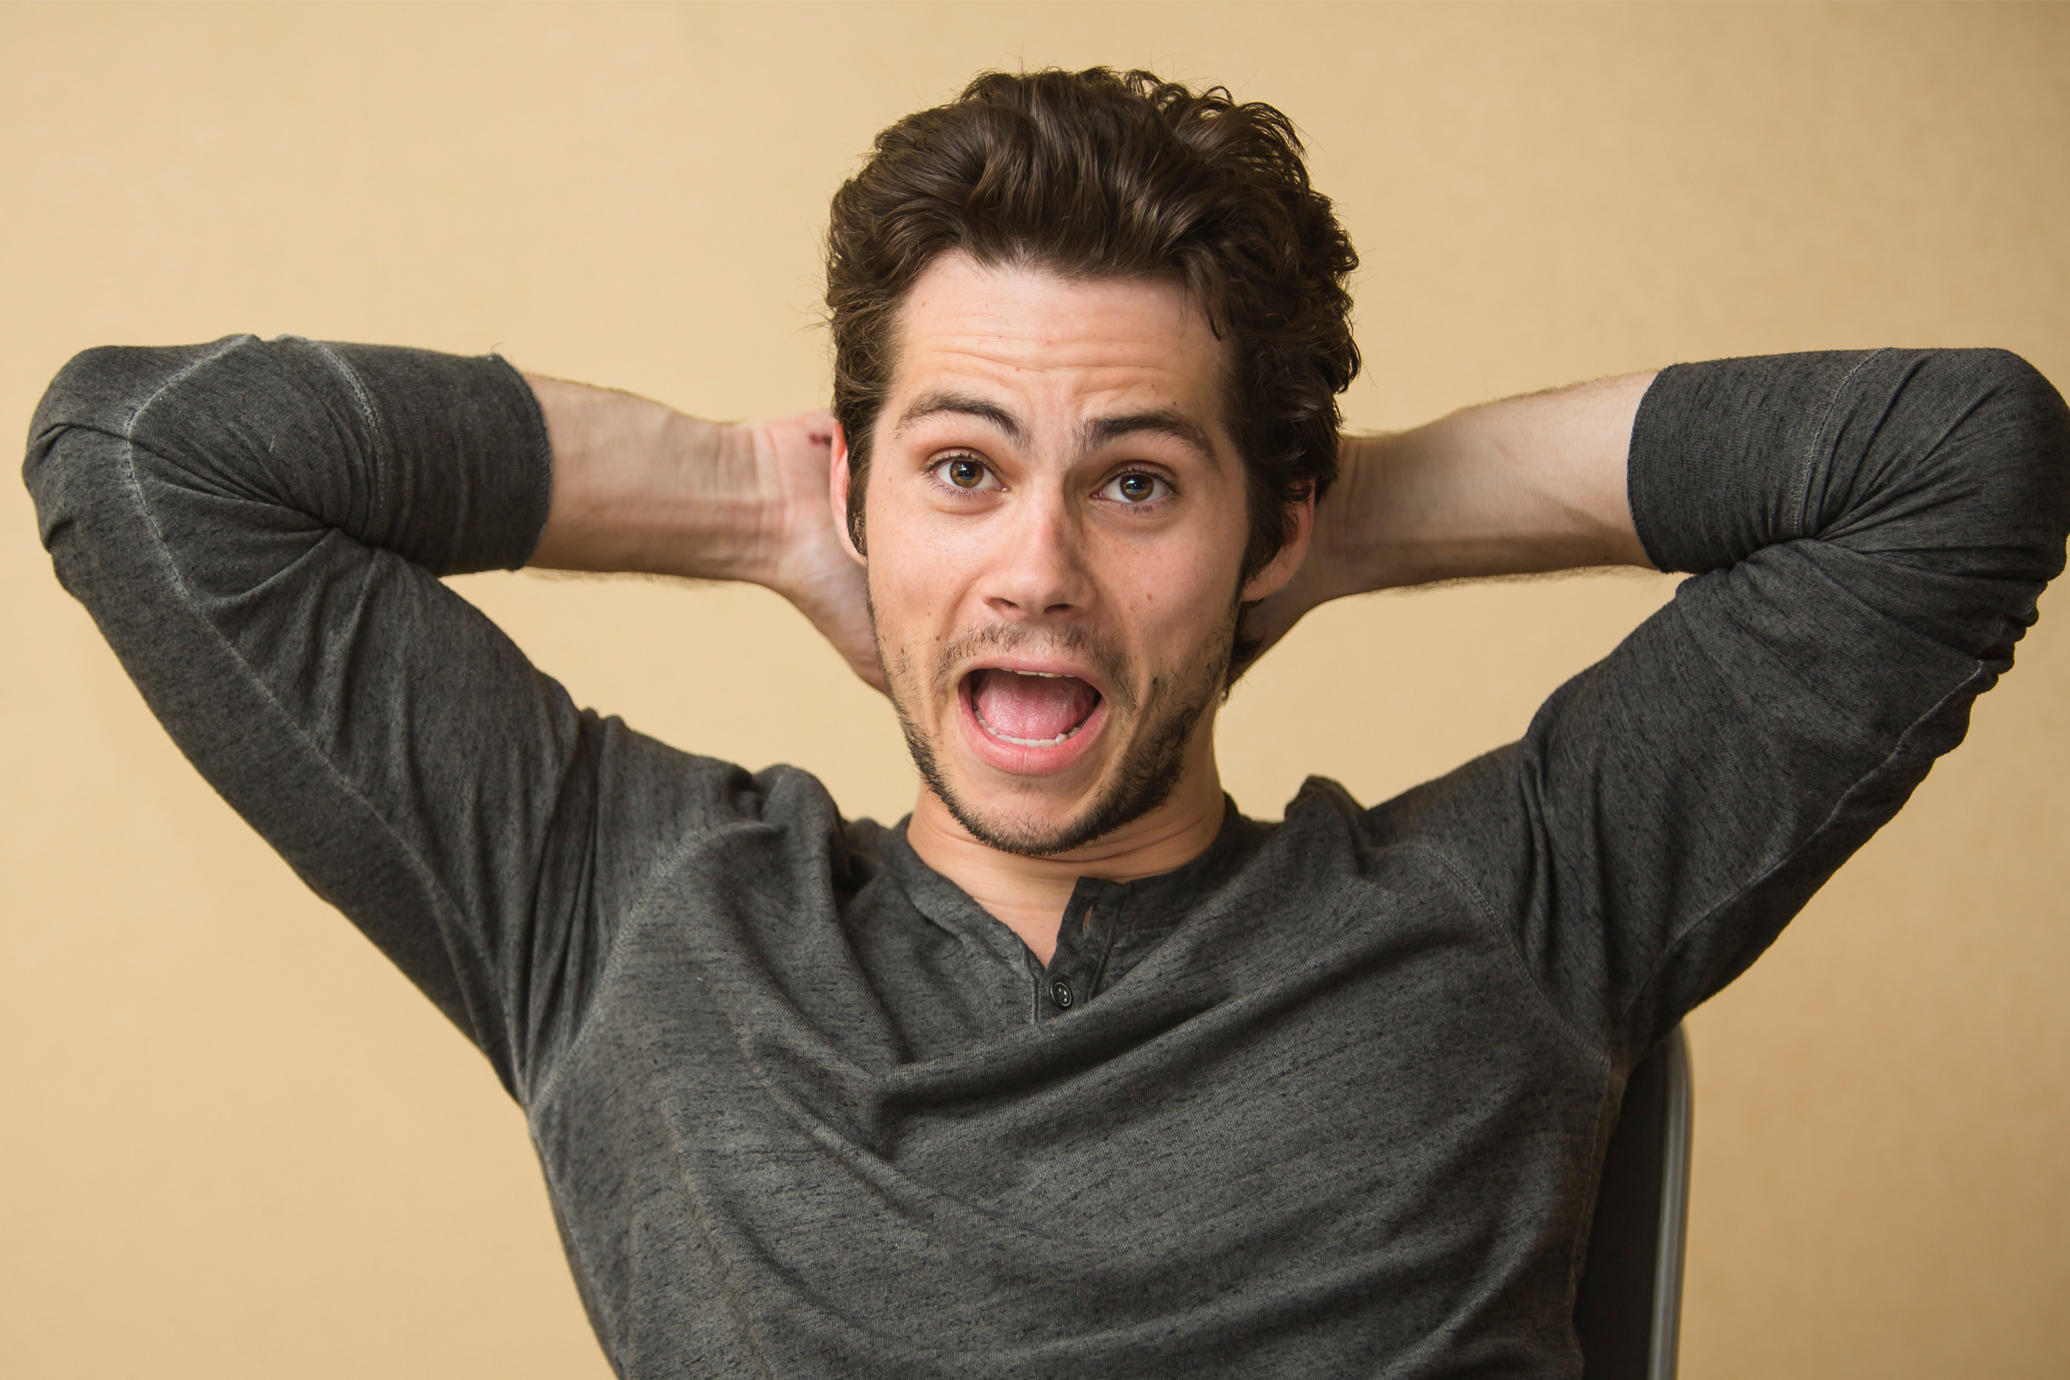 Dylan OBrien Full HD Wallpaper And Background Image